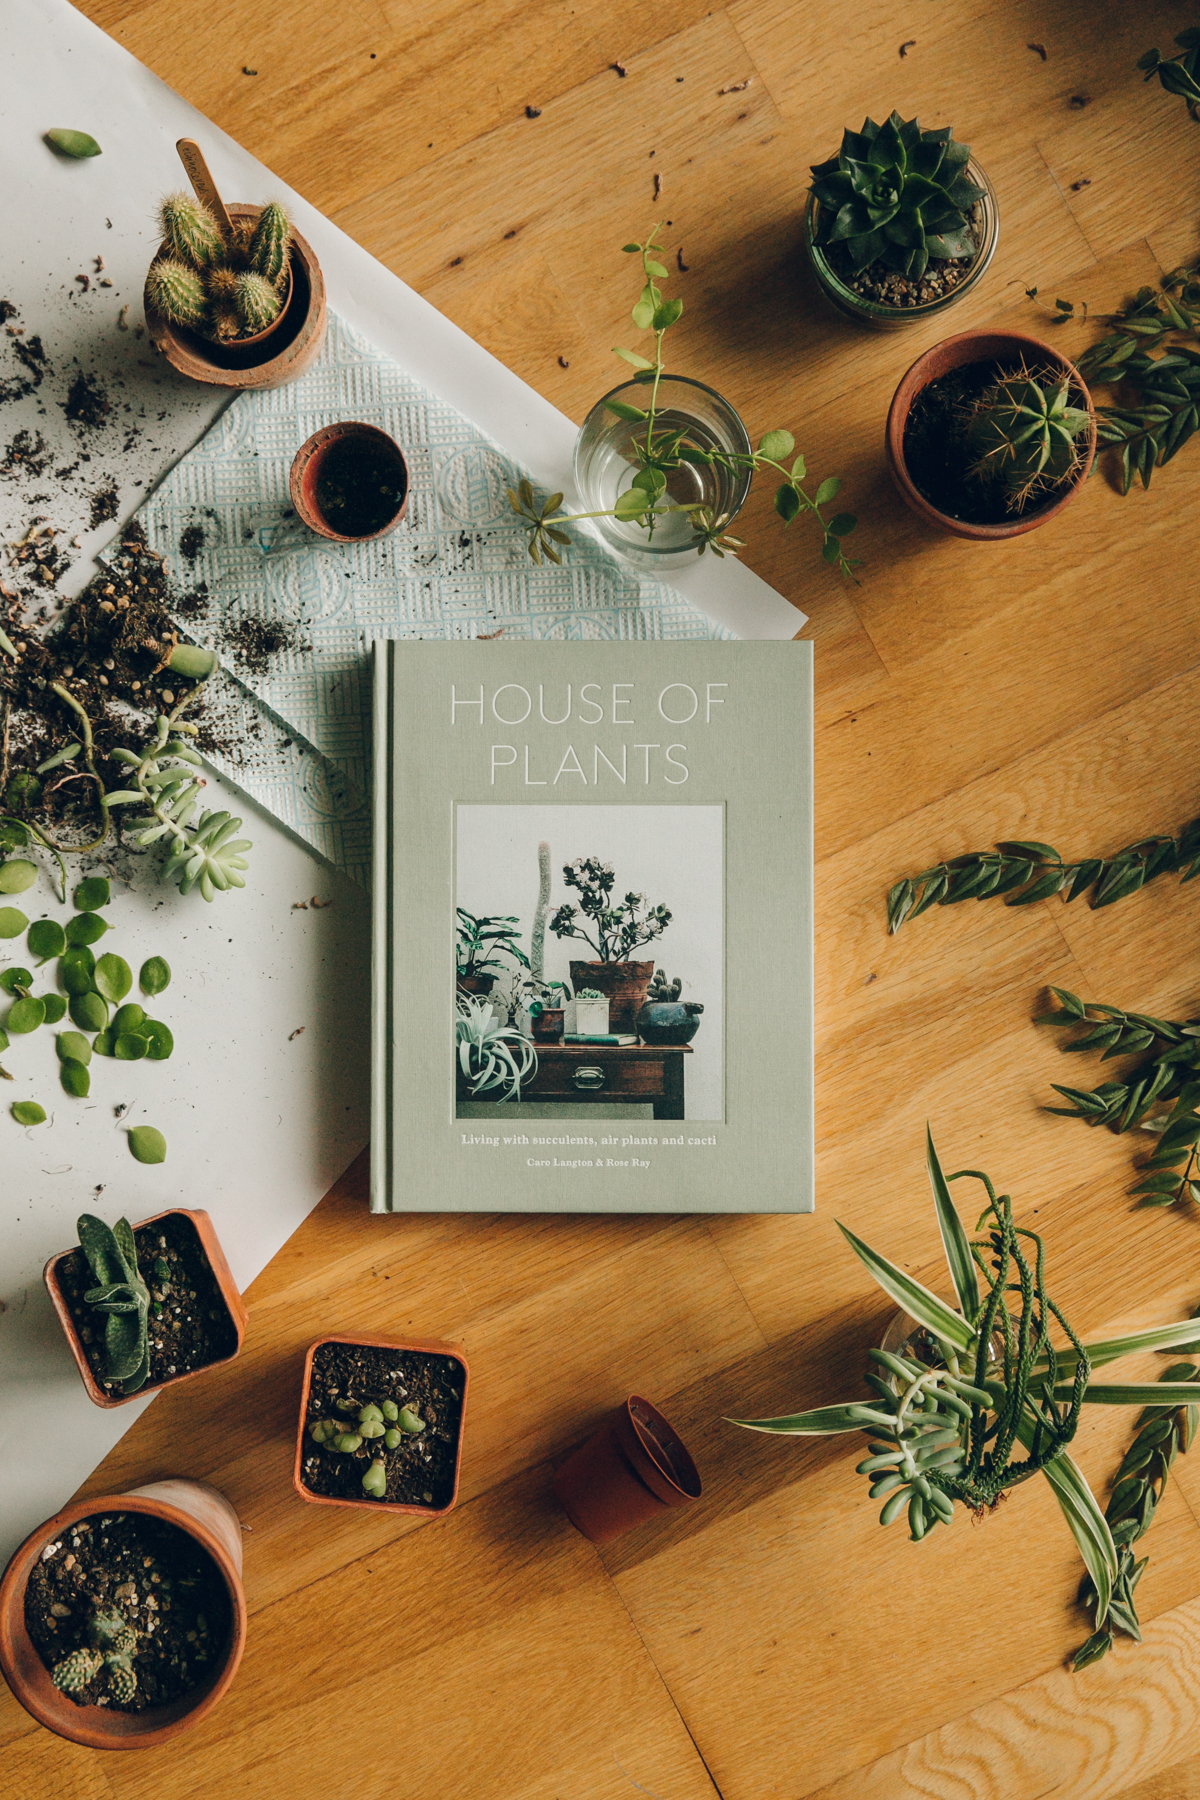 House of Plants: Living with Succulents, Air Plants and Cacti book.